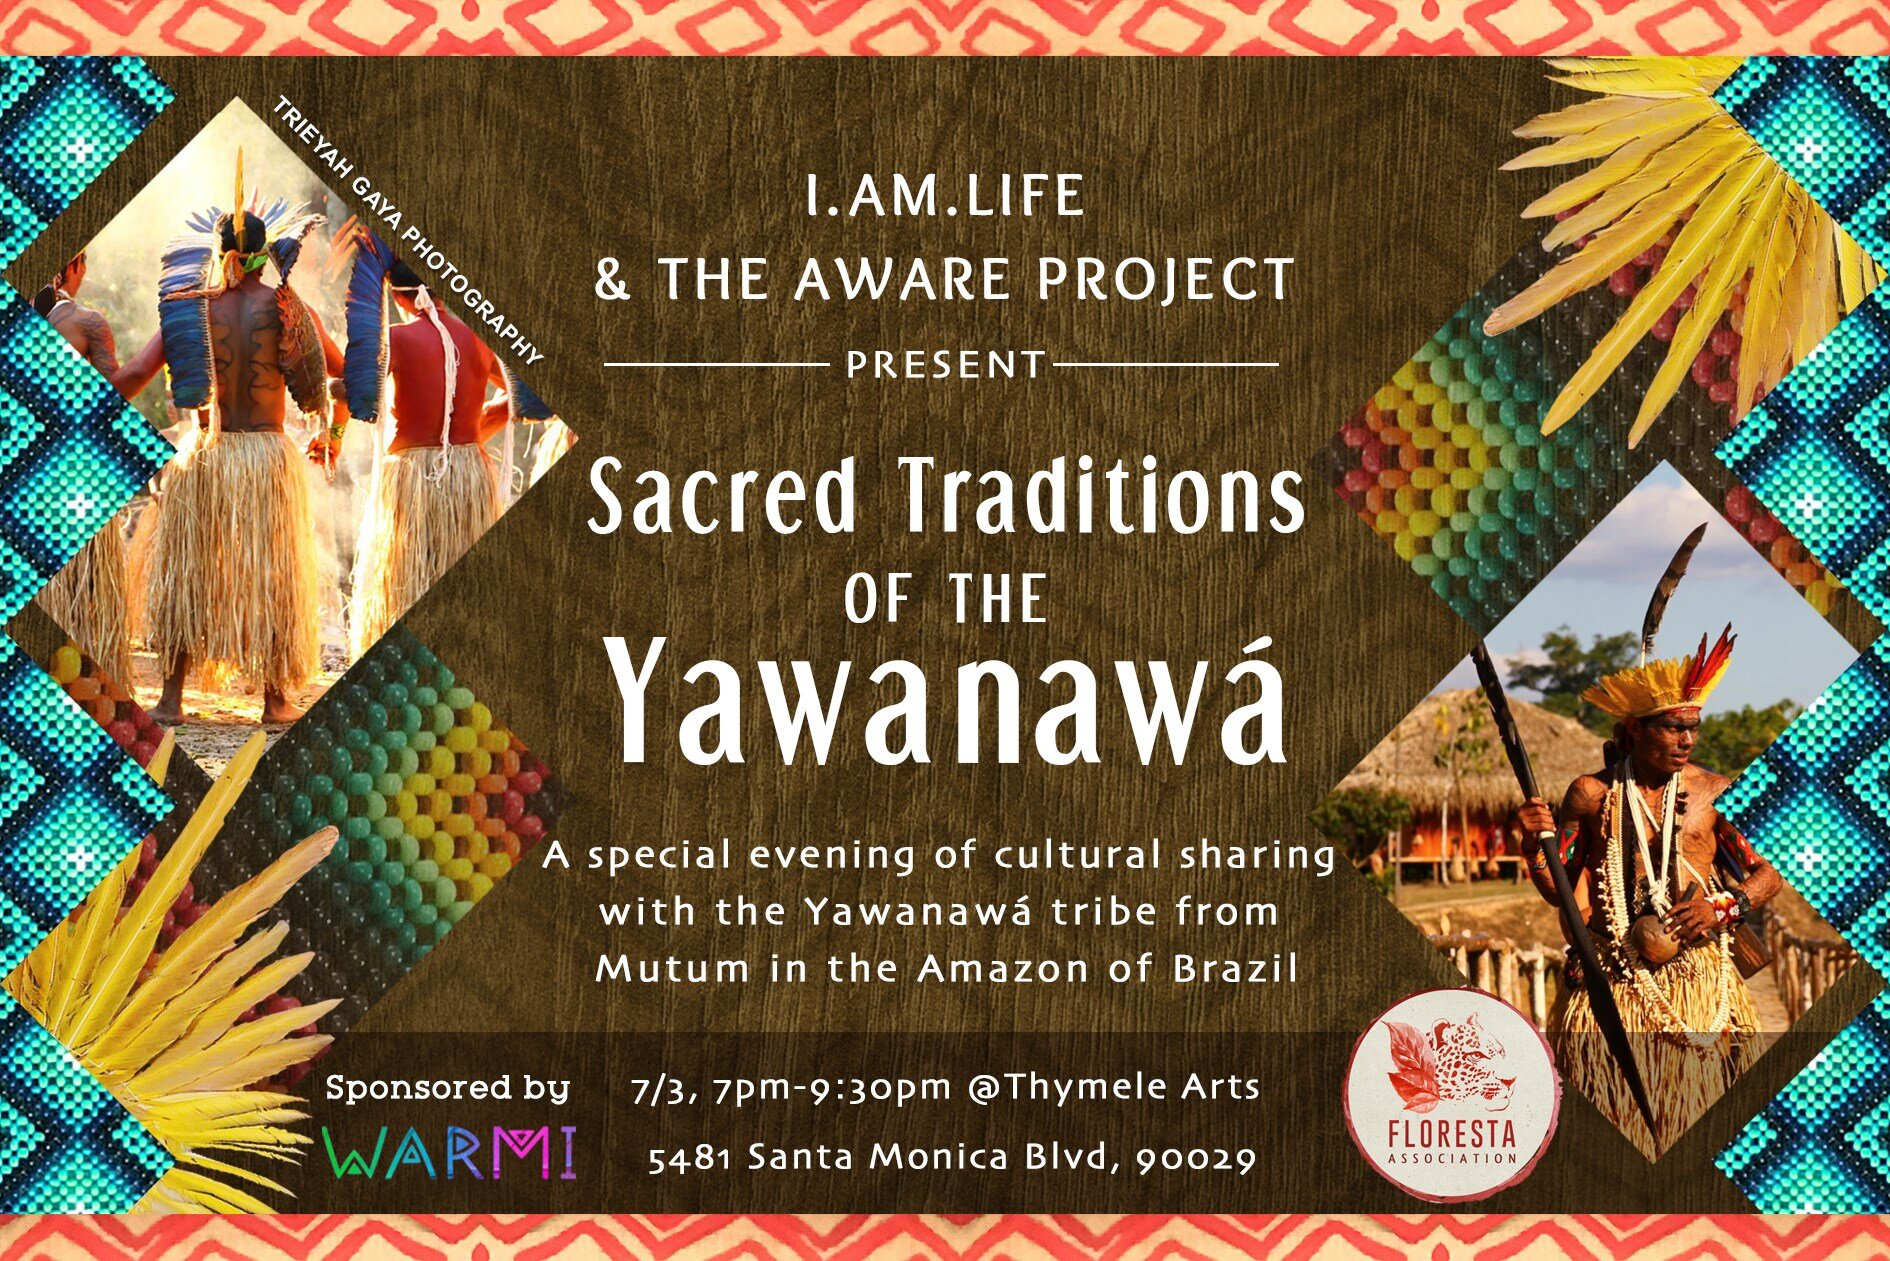 Sacred Traditions of the Yawanawá